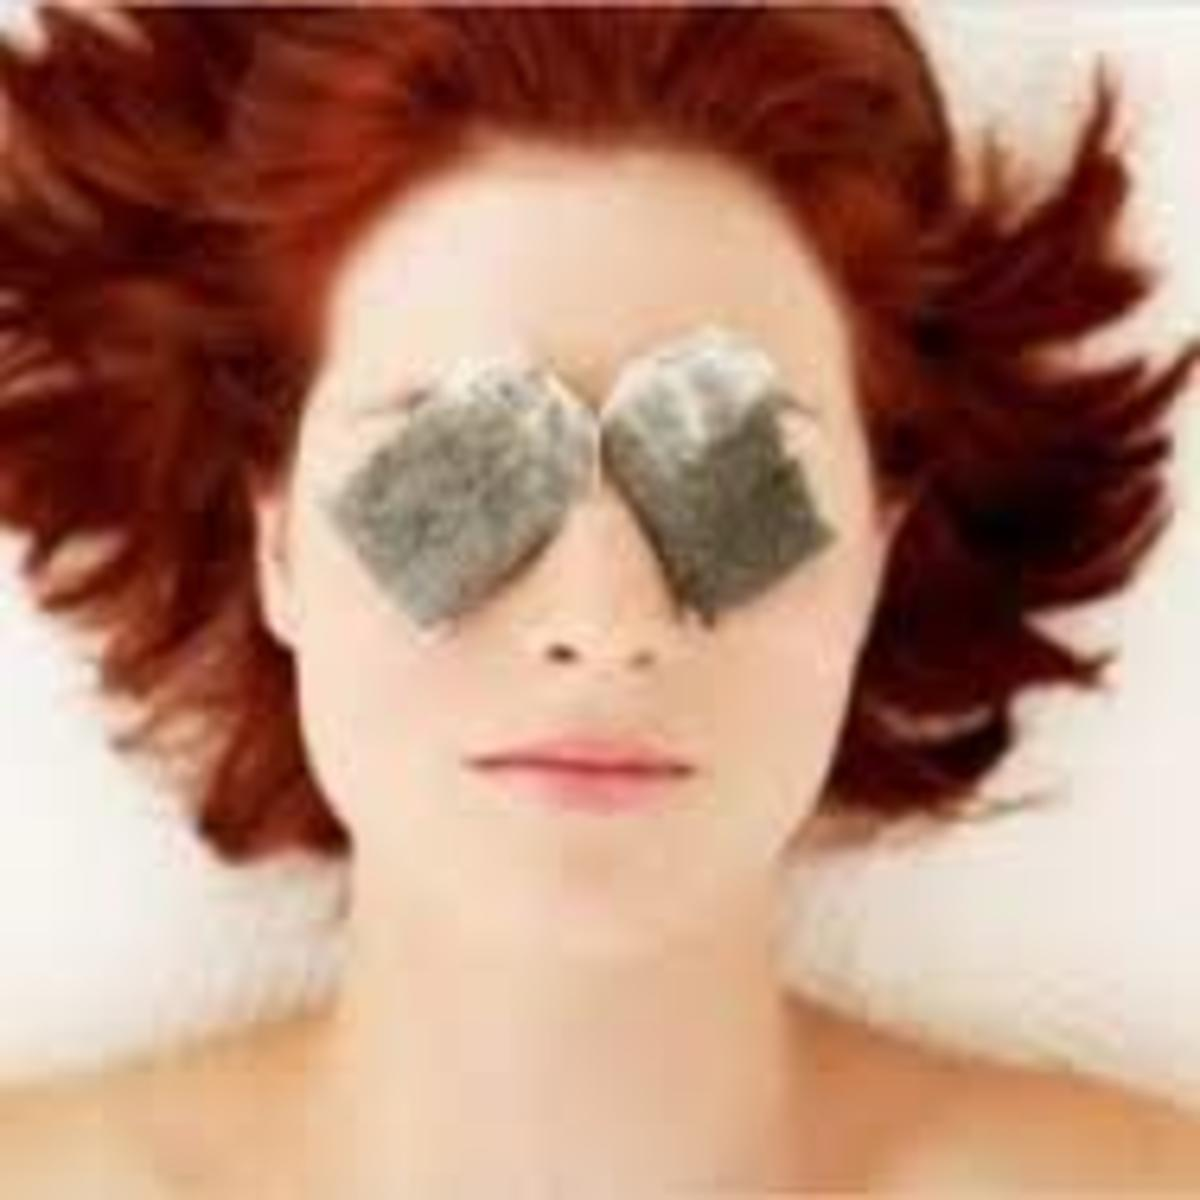 Try Placing Teabags All Over Your Face When It's Sunburned